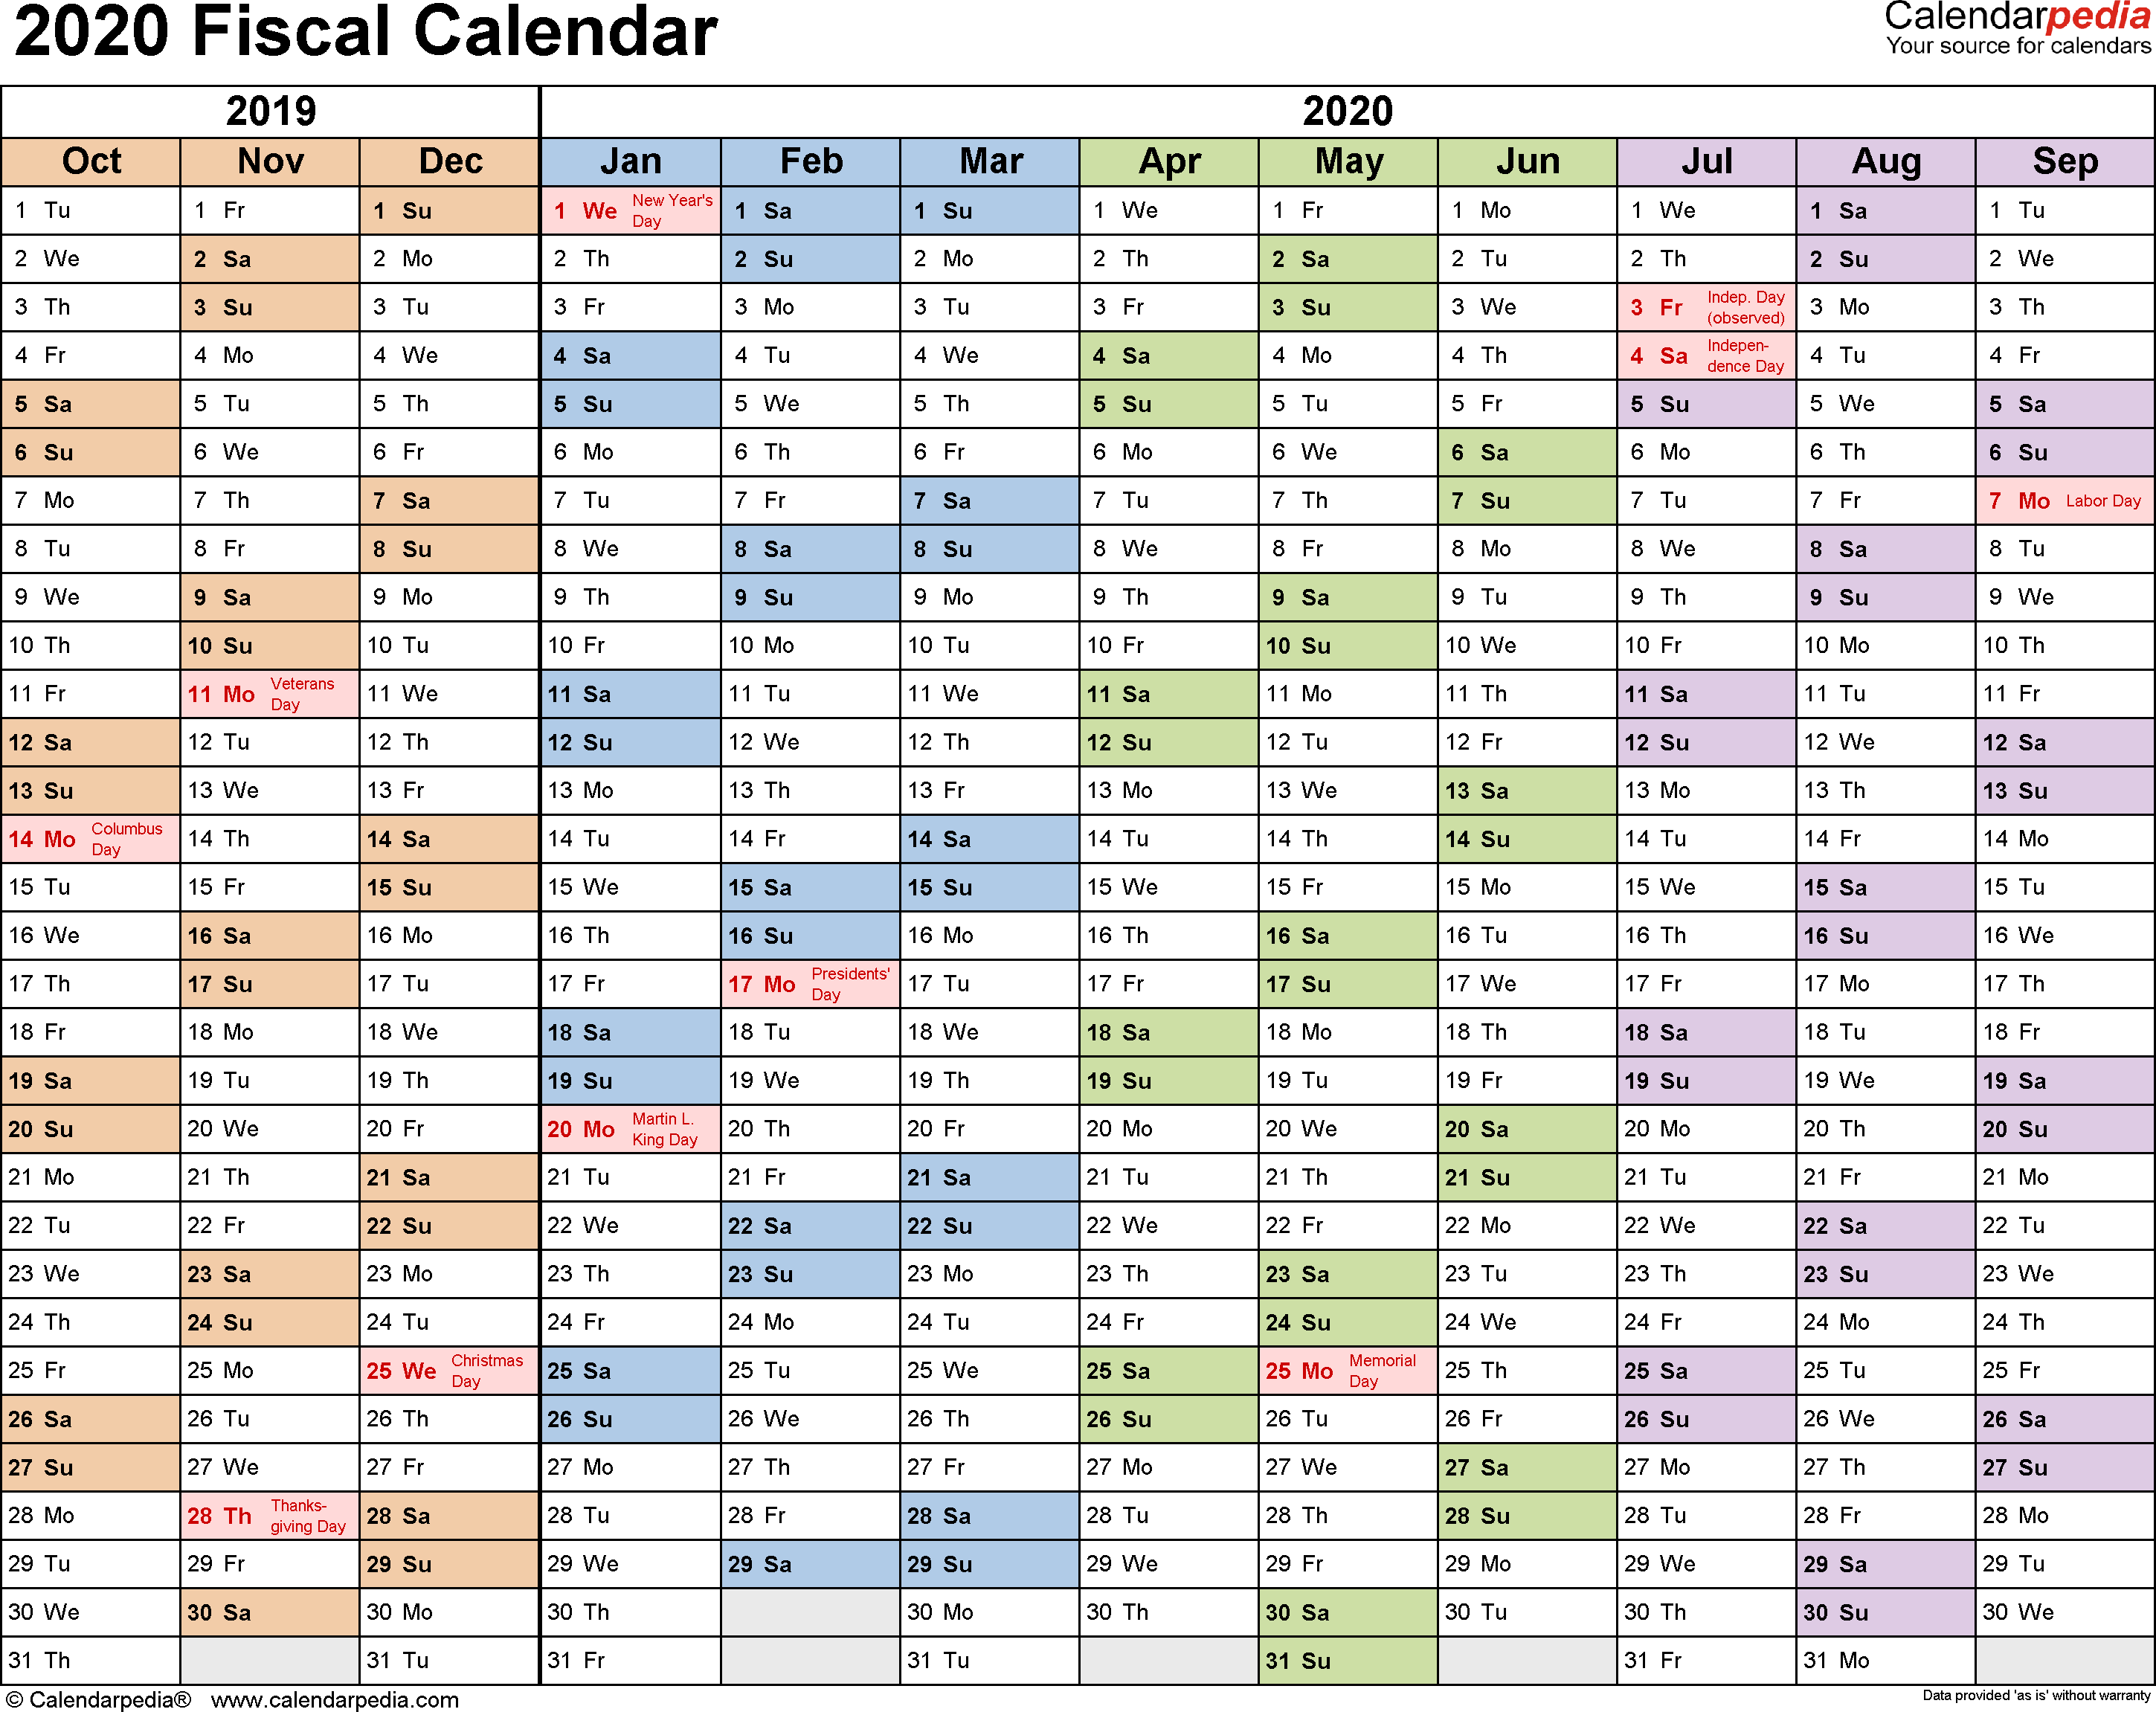 Army Fiscal Year 2019 Calendar With Calendars 2020 As Free Printable PDF Templates